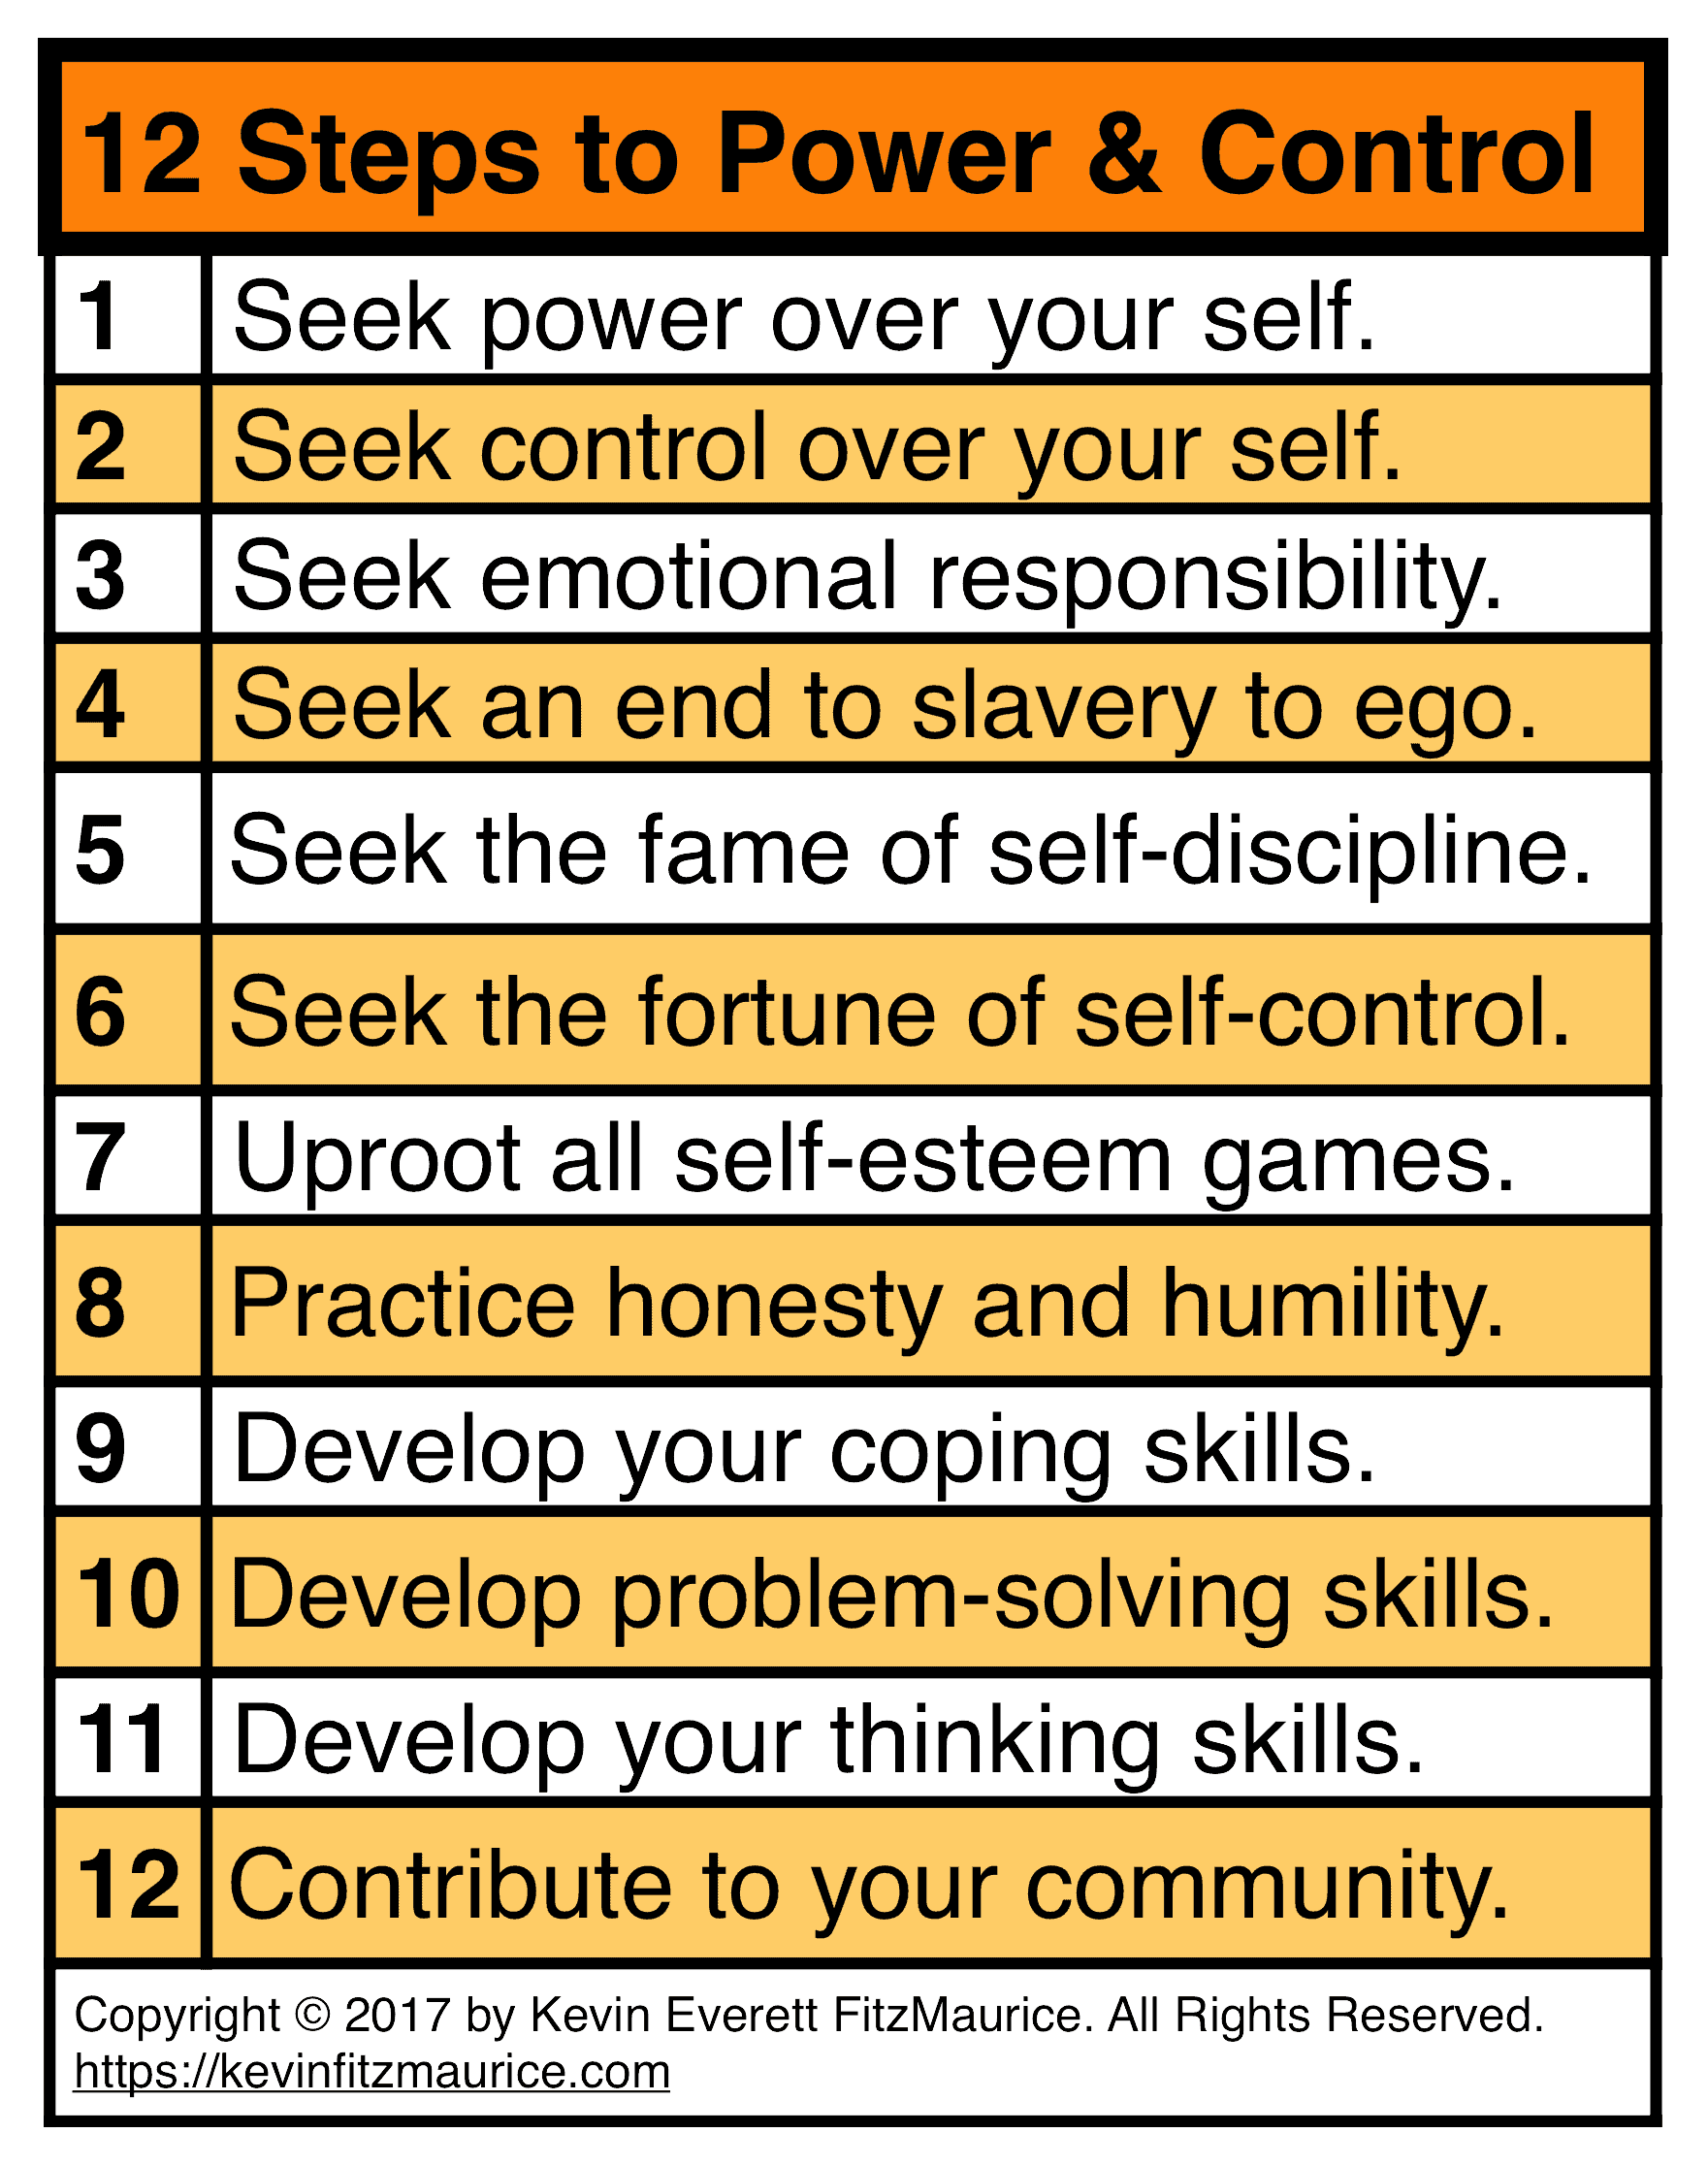 12 Steps to Power & Control